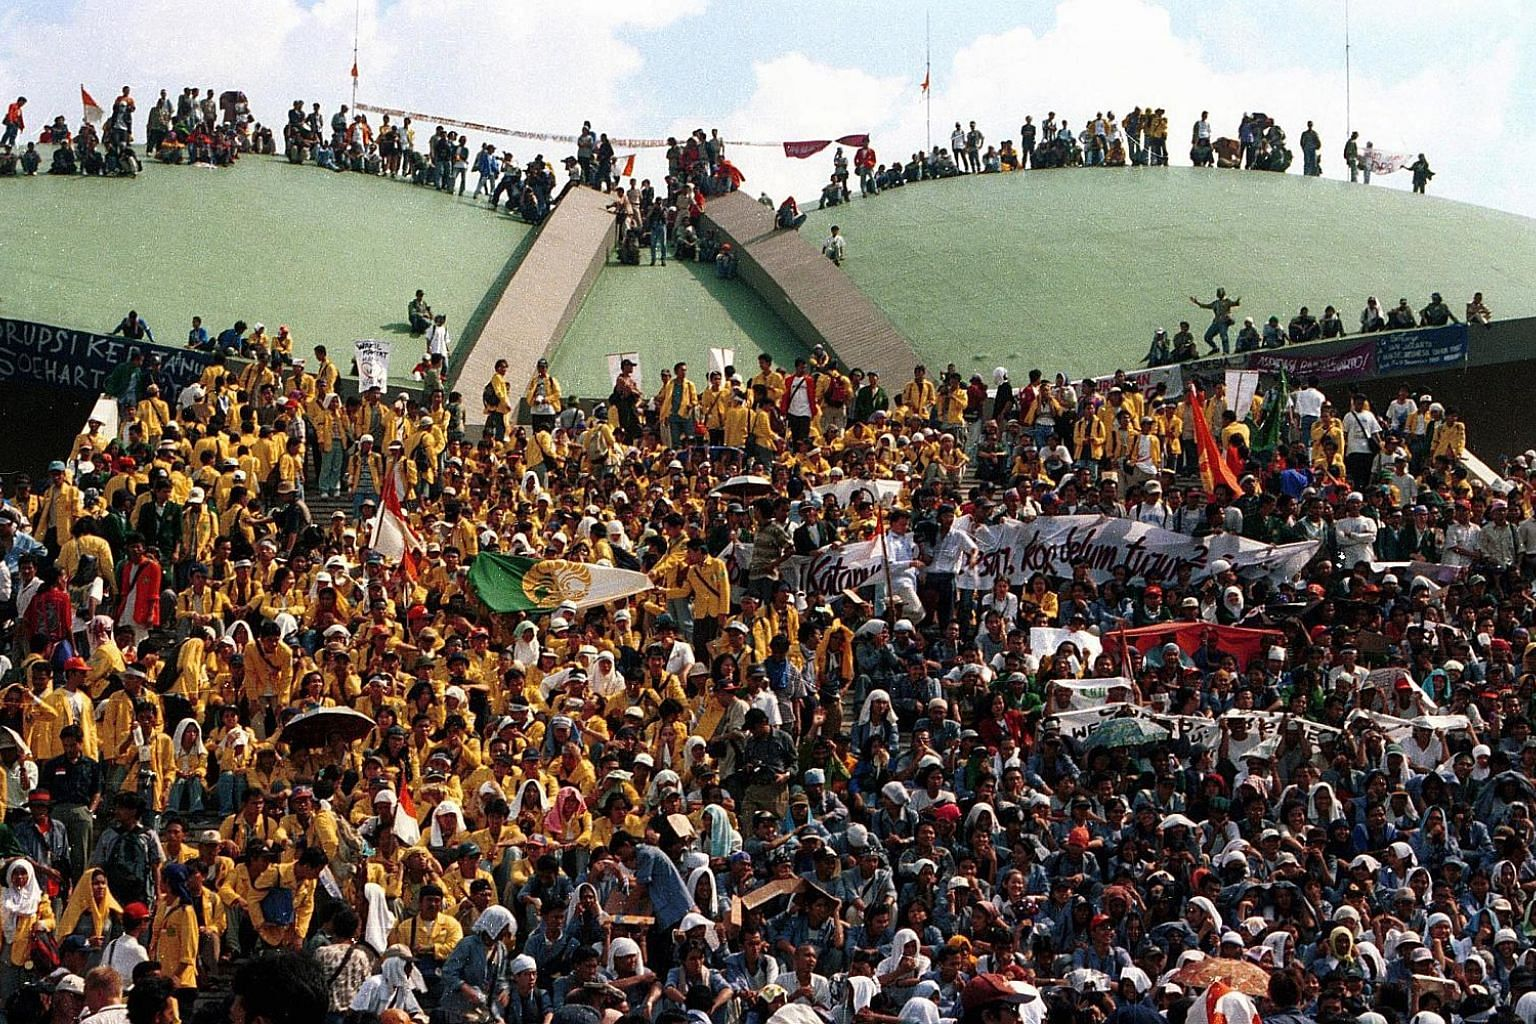 Thousands of students and activists staging a protest on Parliament's grounds in May 1998 to demand the resignation of Indonesian leader Suharto. Protesters, lawmakers and the military were eventually united in removing the strongman of 32 years from